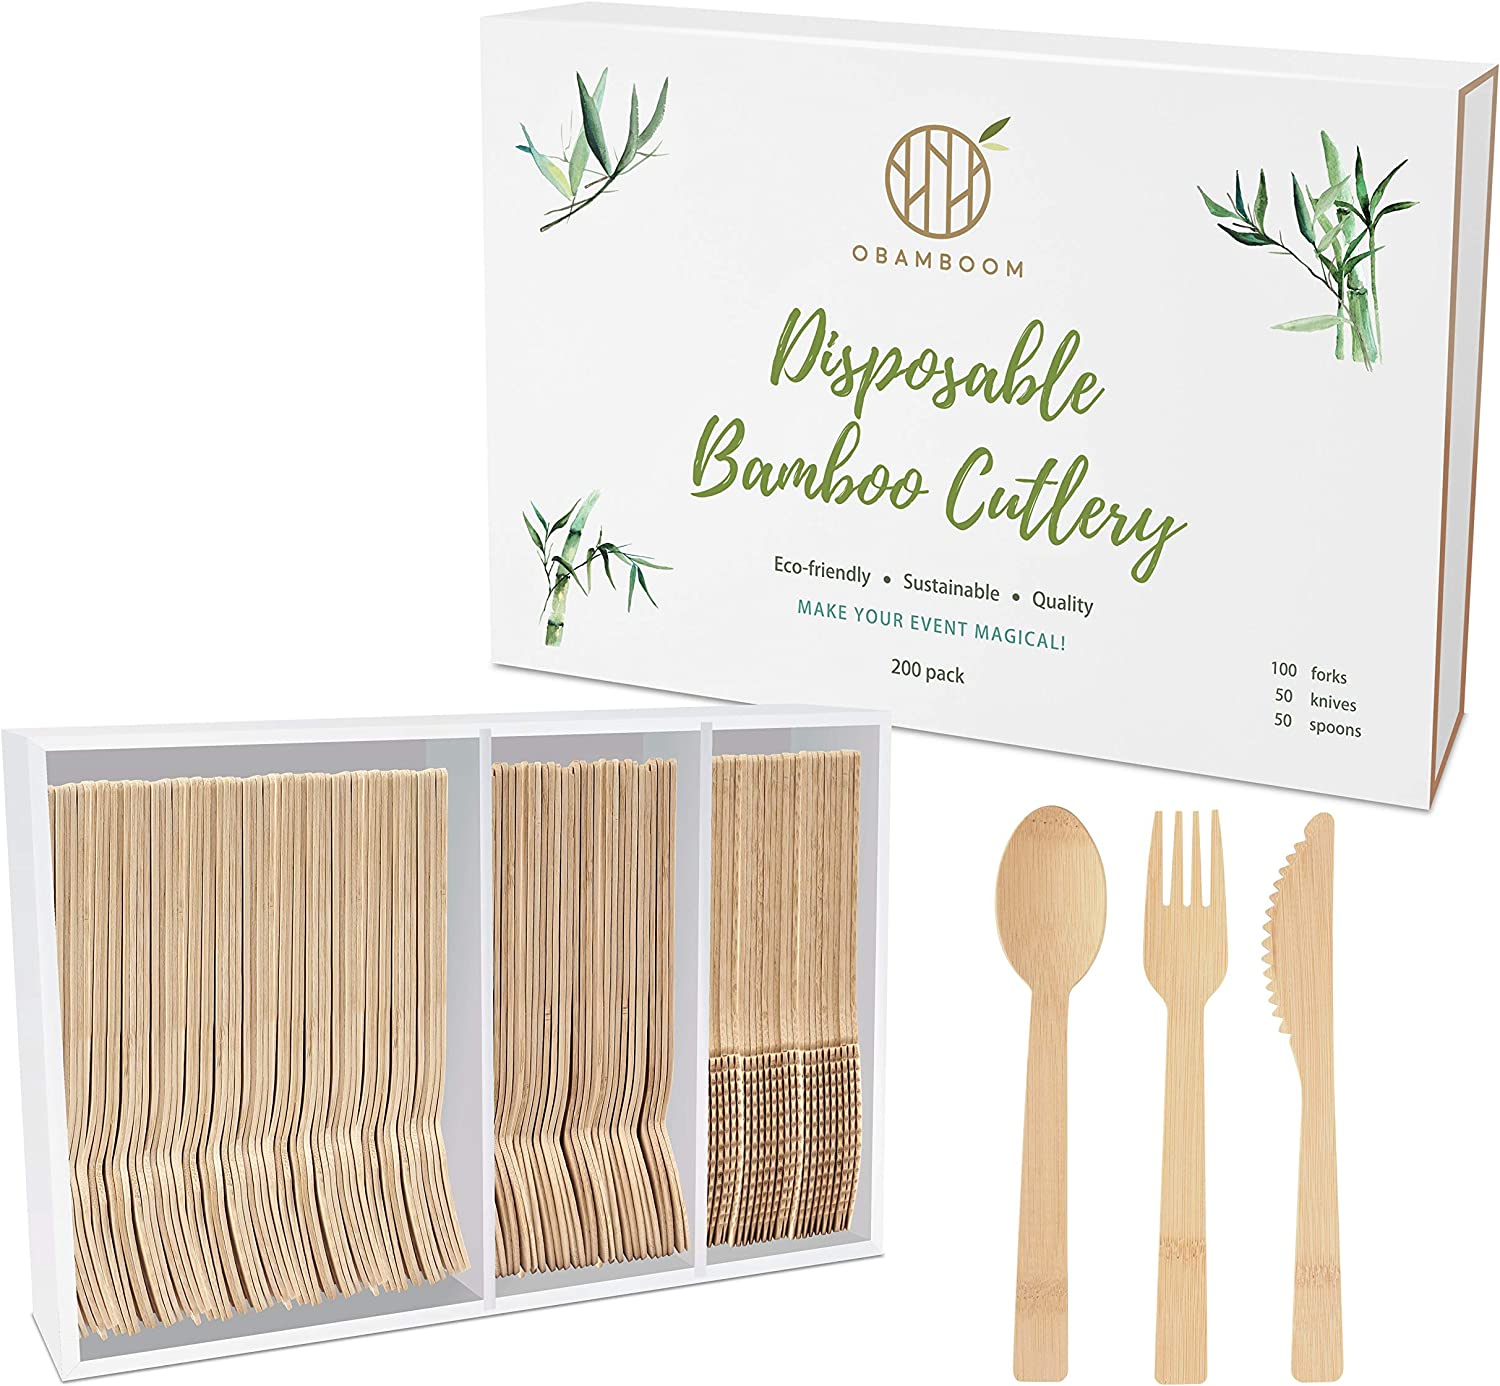 OBAMBOOM Eco-friendly Disposable Bamboo Cutlery - 200pc (100 Forks, 50 Knives, 50 Spoons) Superior to Wooden Cutlery! Natural and Compostable Flatware Utensils with Plastic-Free Packaging